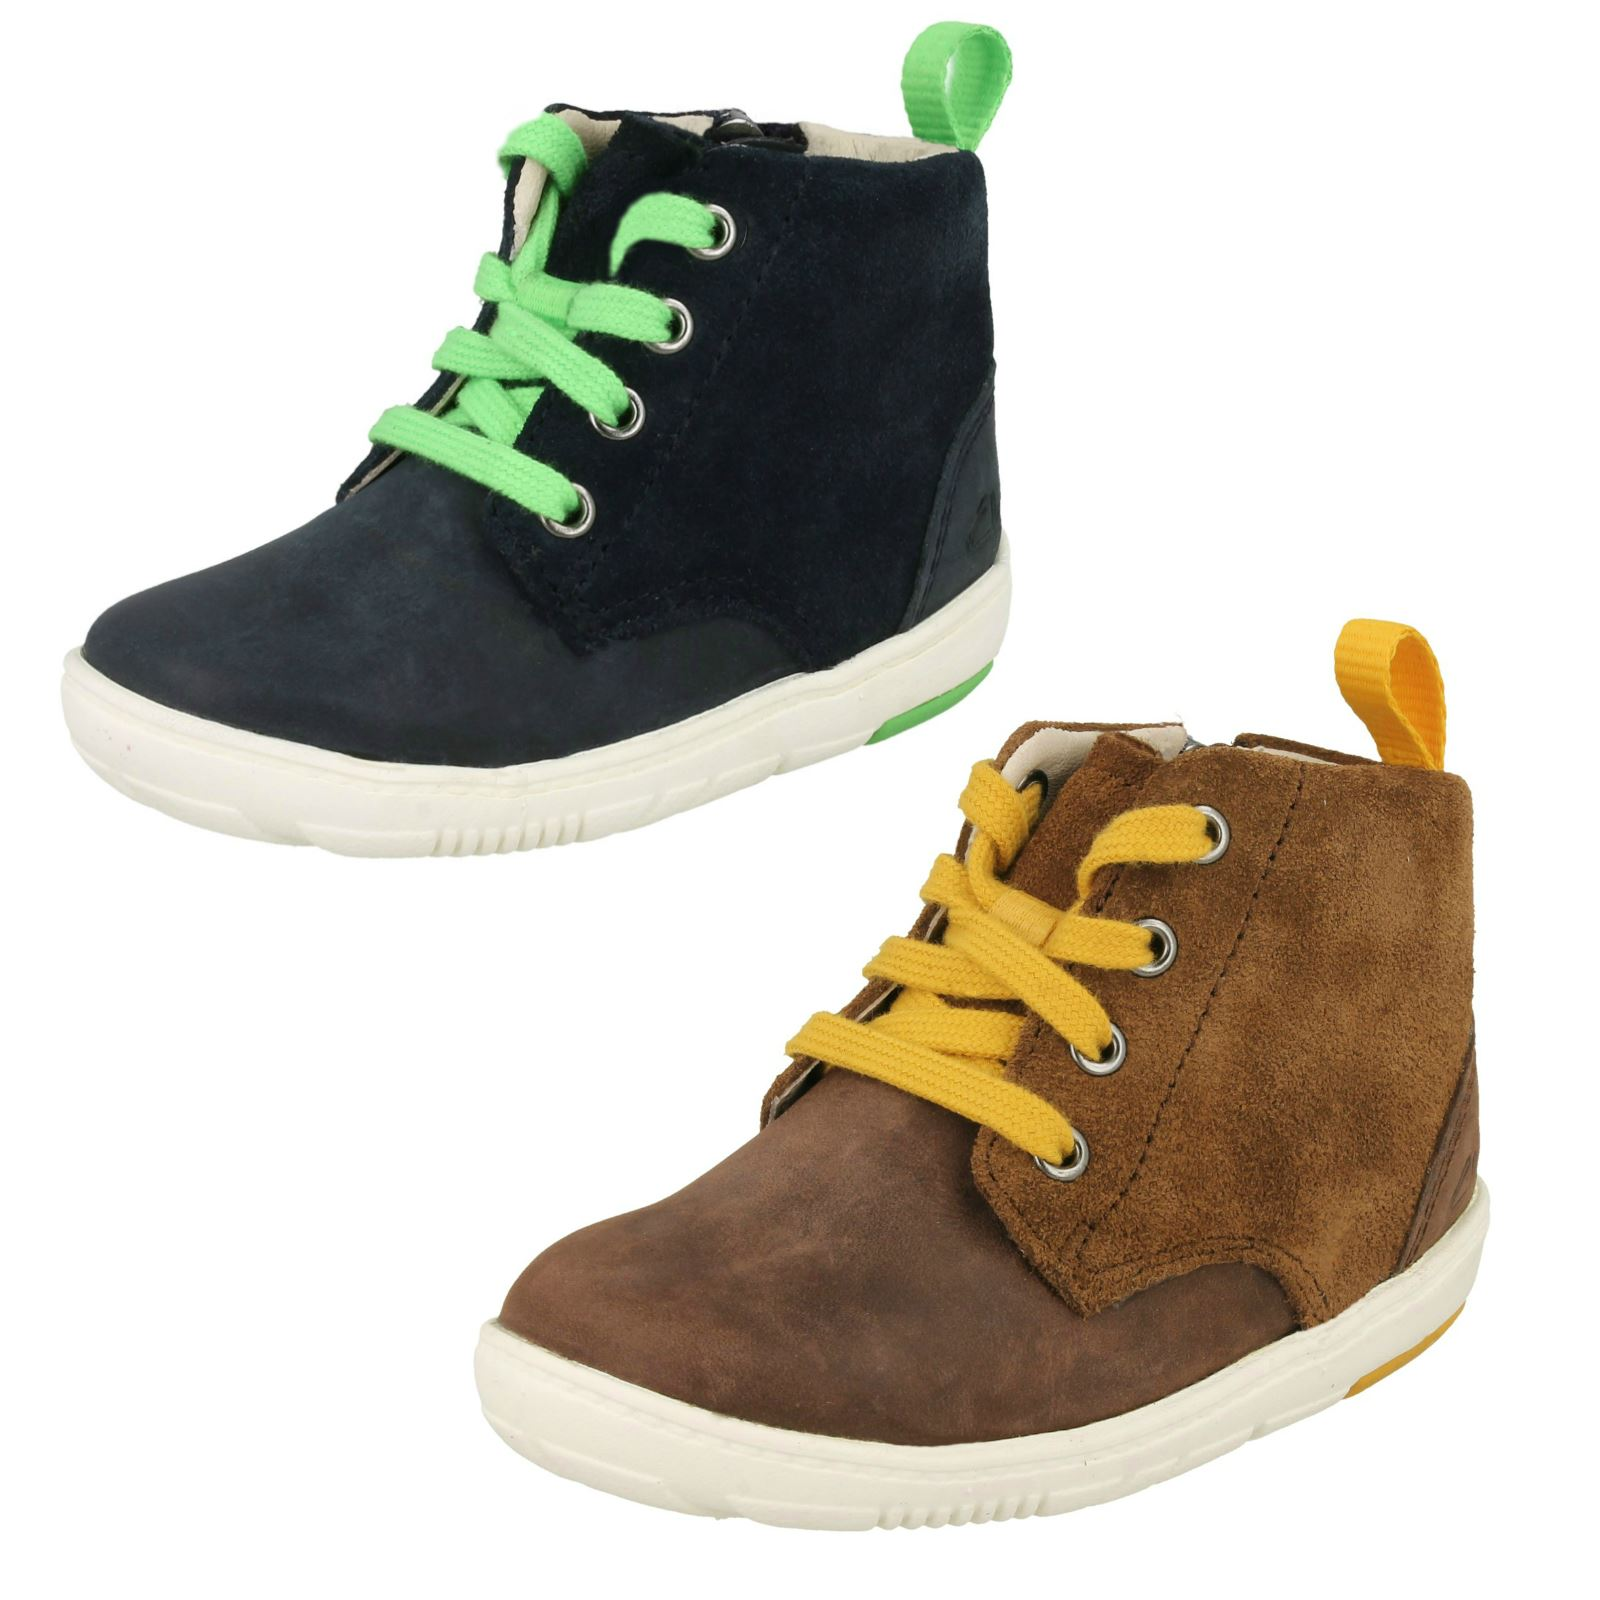 6498153be45 Boys Clarks Ankle Boots Maxi Hehe